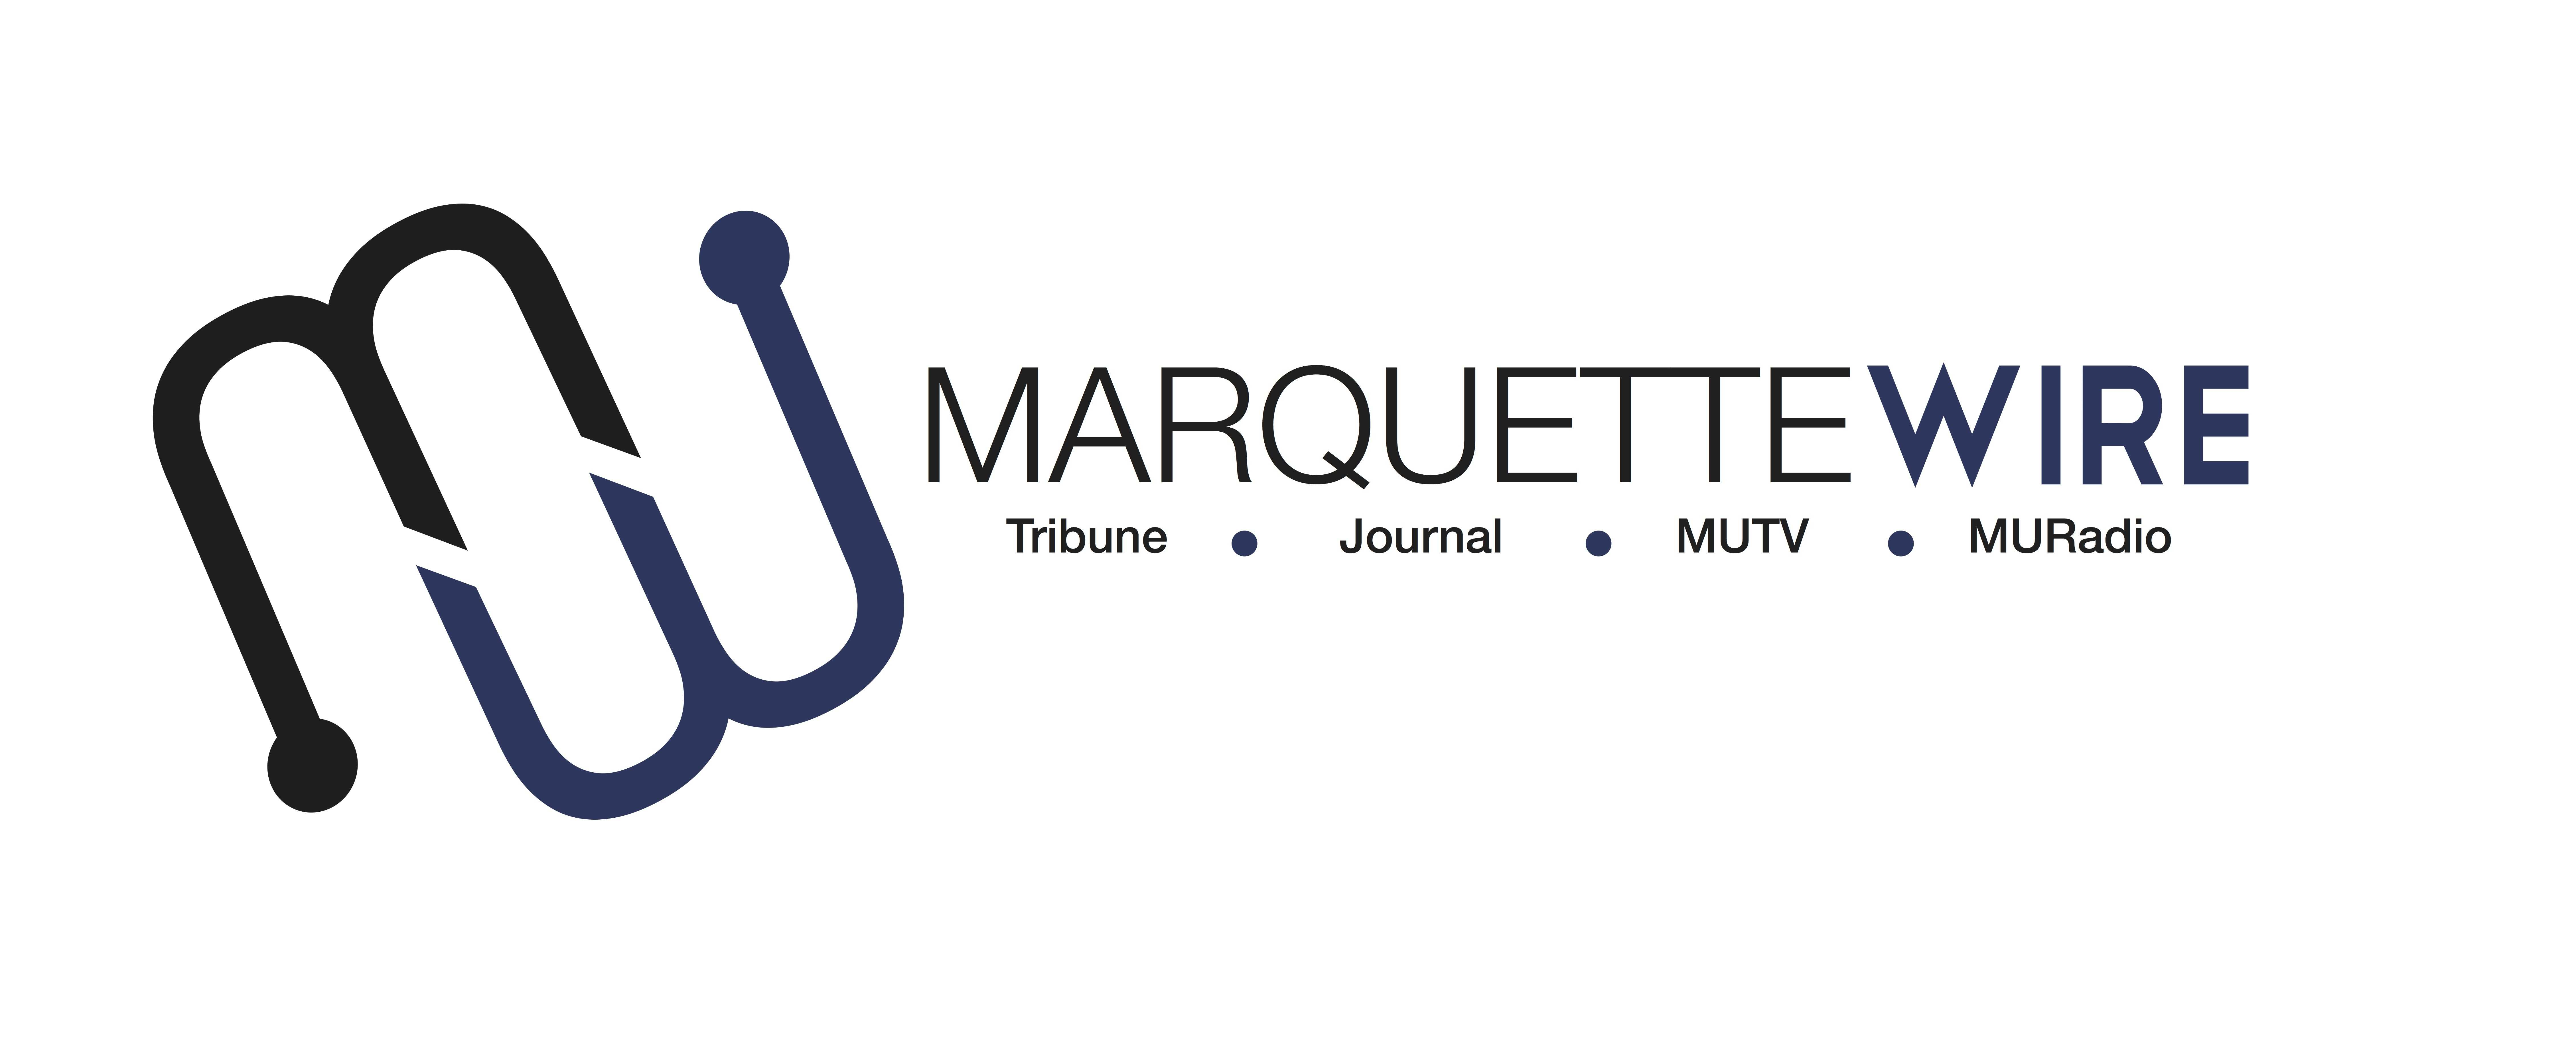 In a new brand of student media, the campus newspaper, magazine, TV and radio work together as one staff, entering our fourth year as the Marquette Wire. This is the new logo, designed for this year.